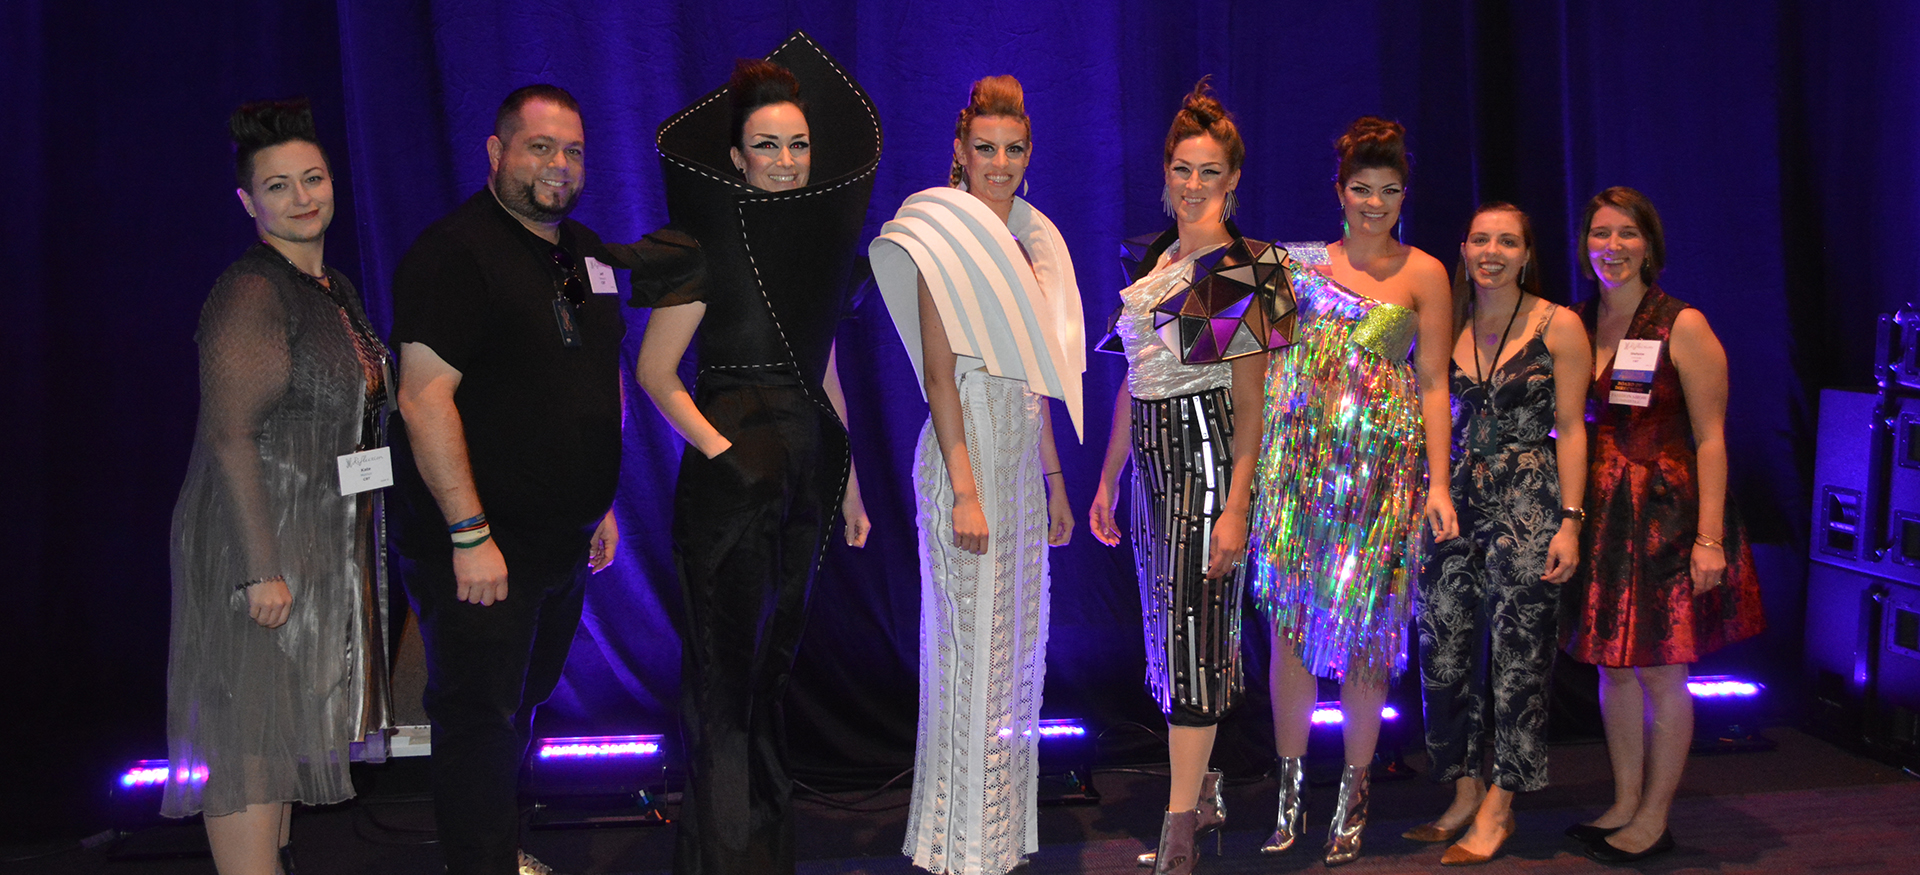 Cbt Wins Two Awards At 2018 Iida New England Fashion Show Cbt